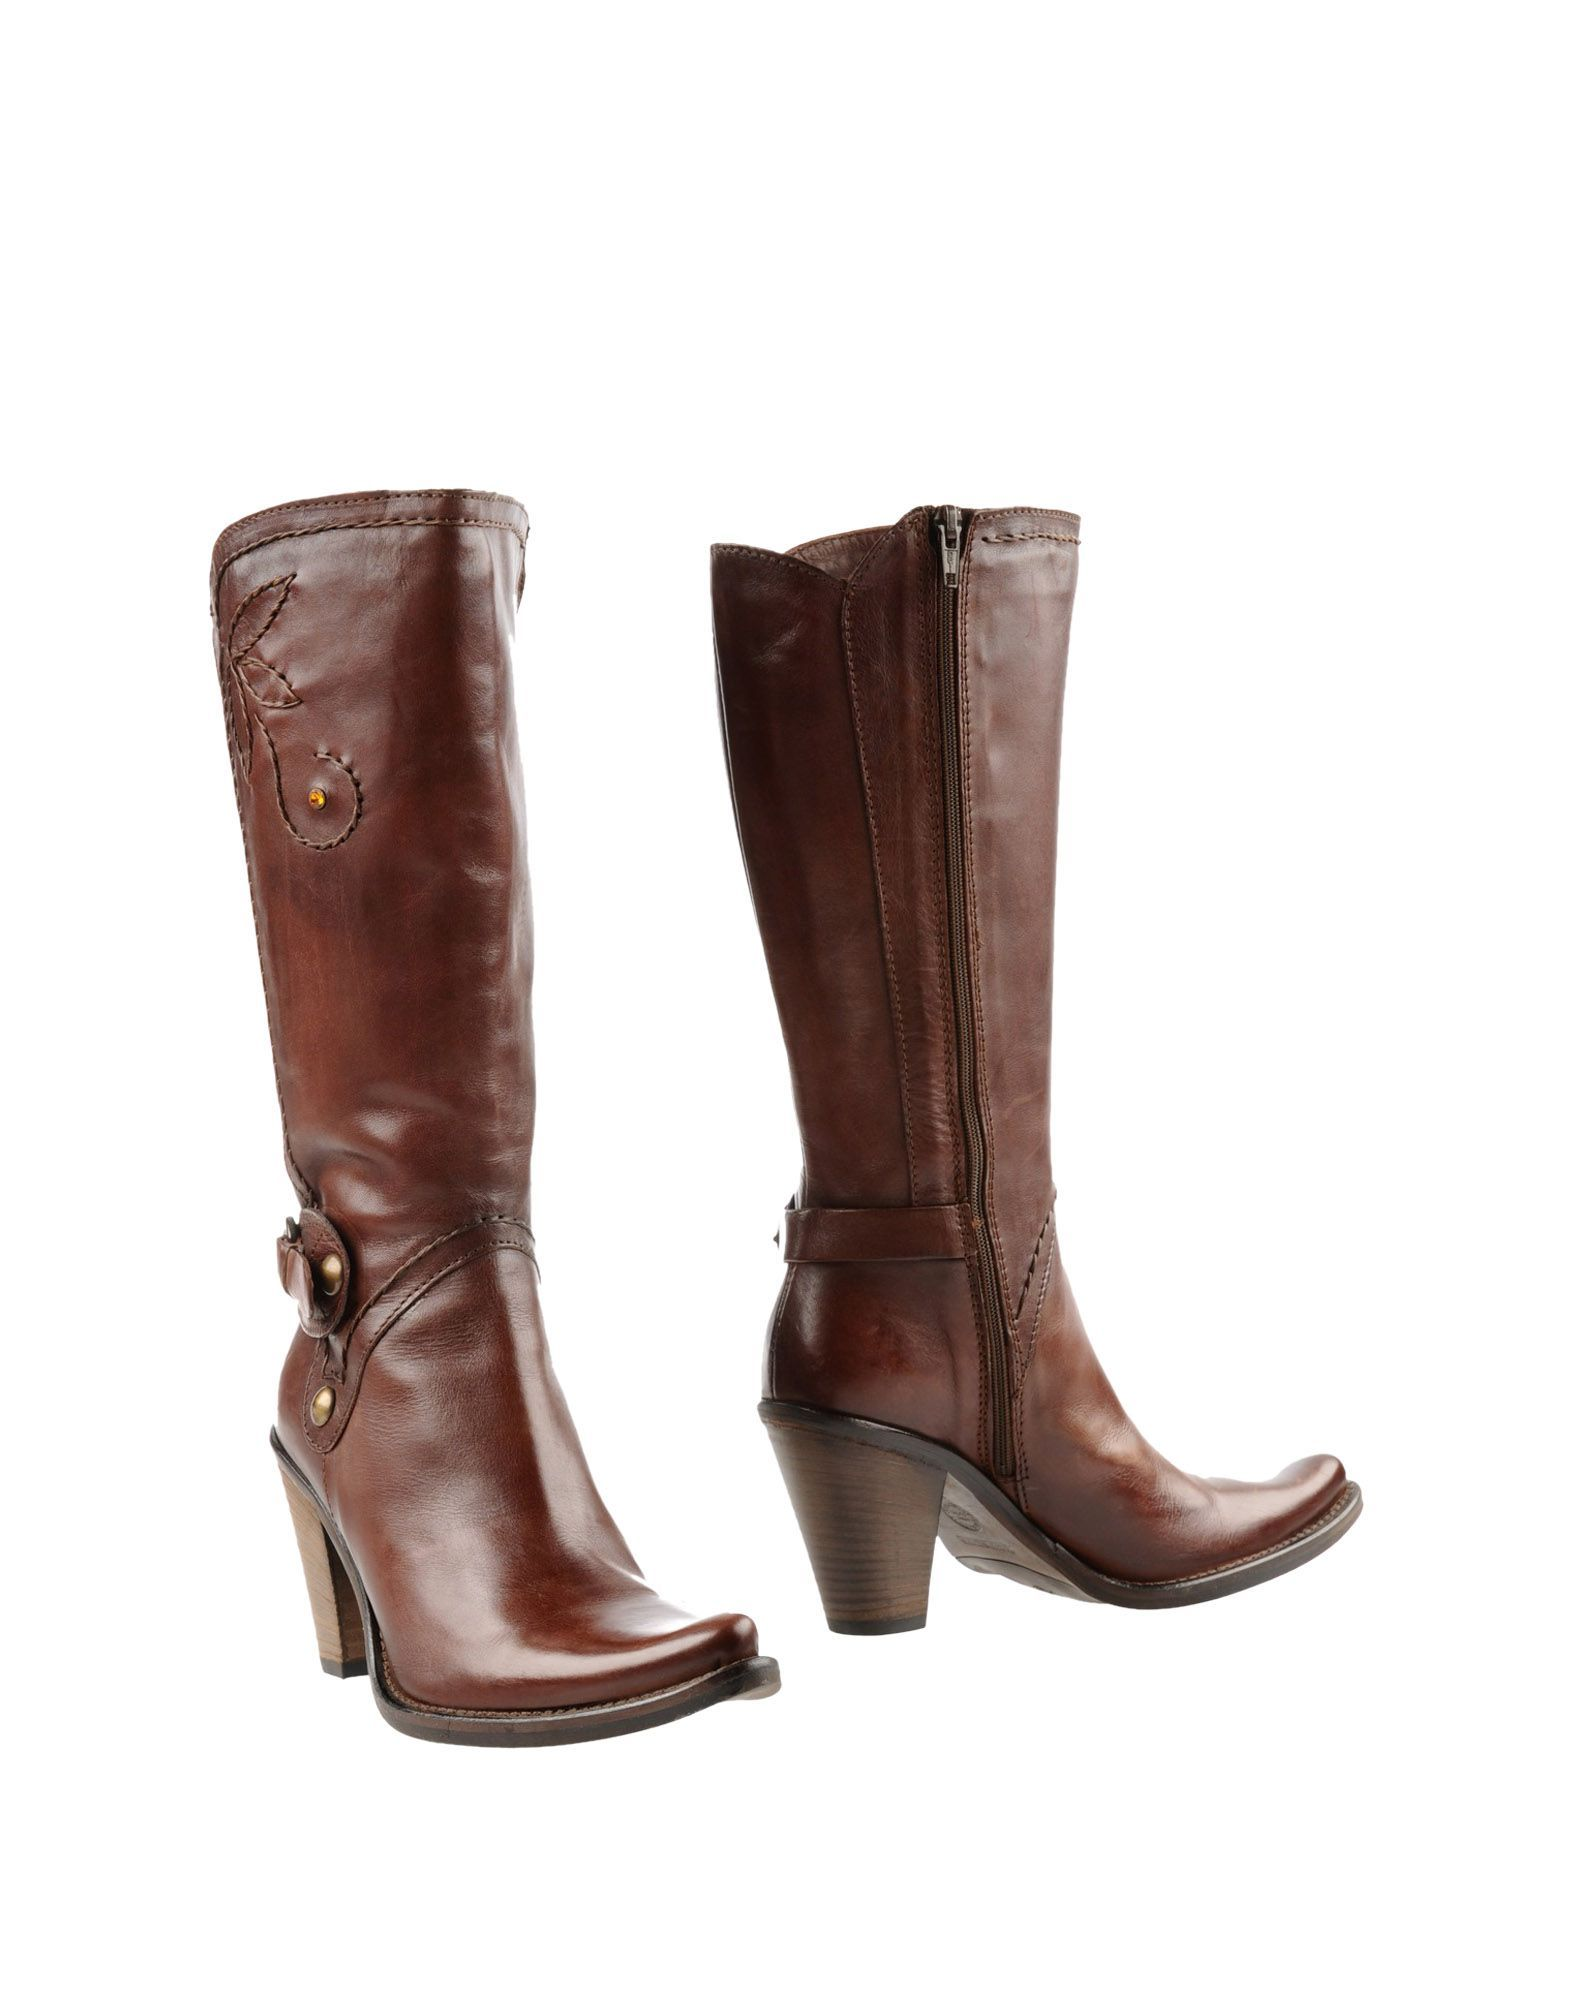 4a01dbb4e8961 Progetto Boots - Women Progetto Boots online on YOOX United States ...